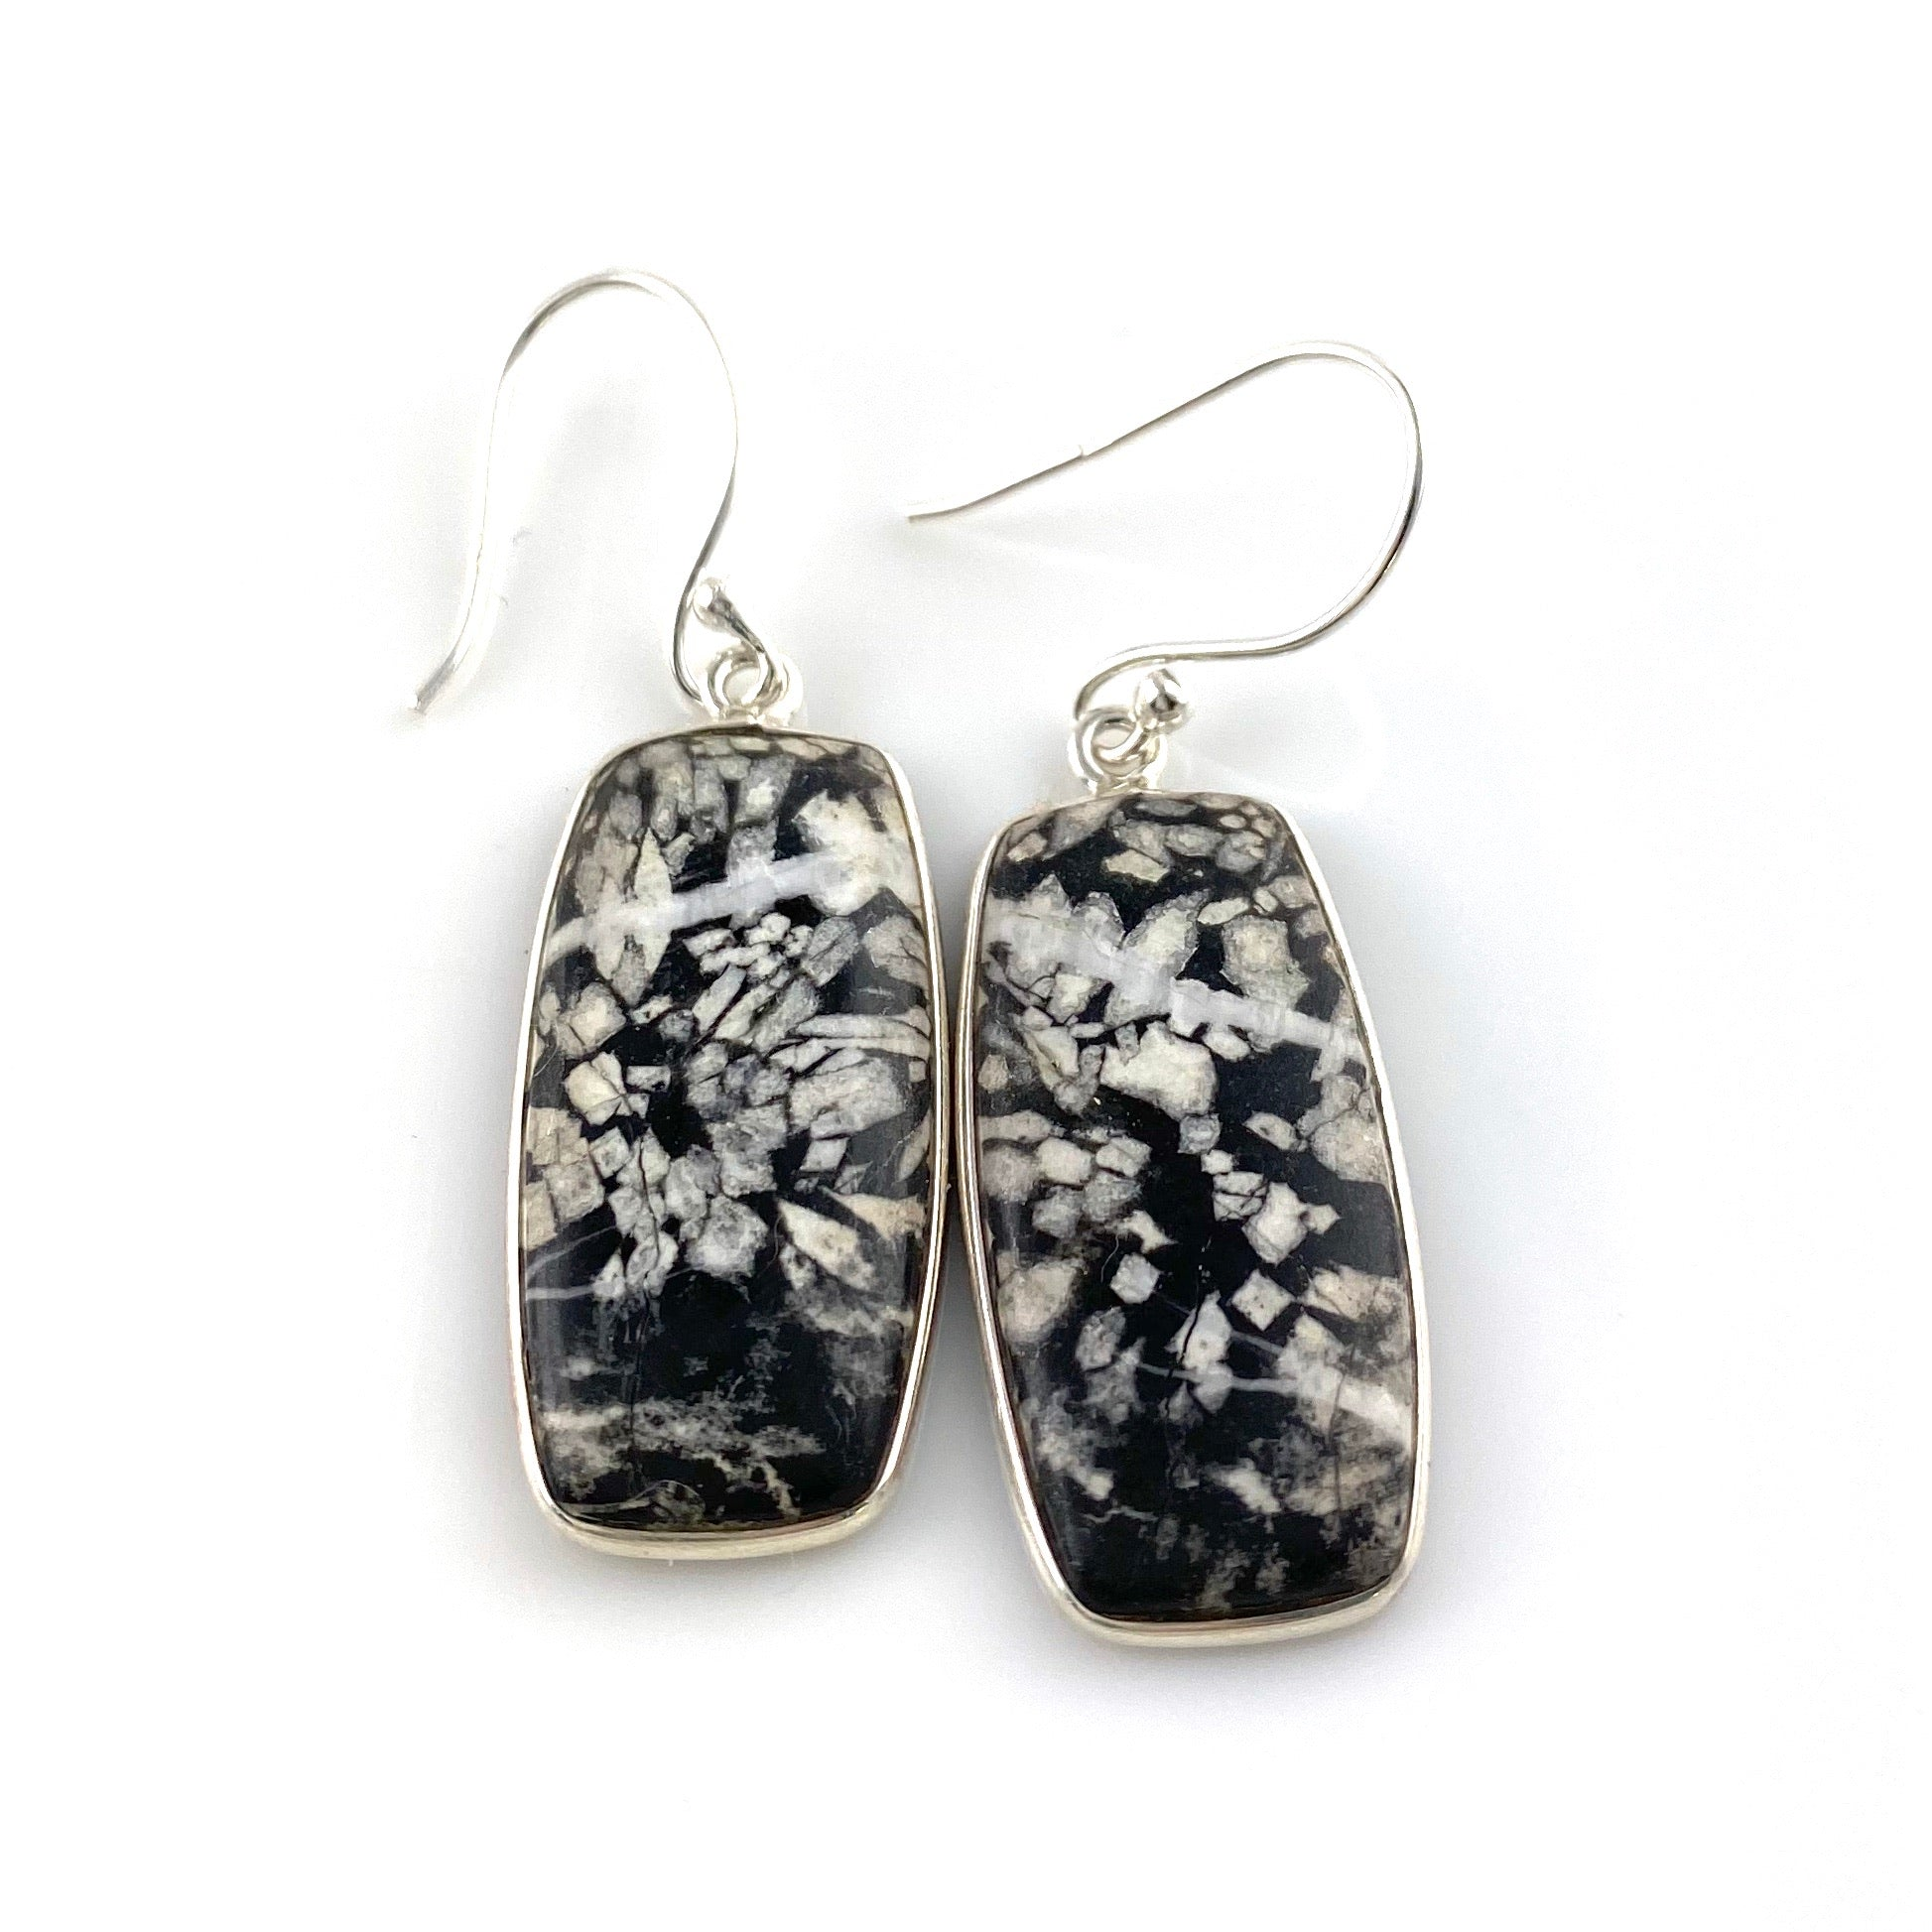 Chrysanthemum Sterling Silver Oblong Earrings - Keja Designs Jewelry